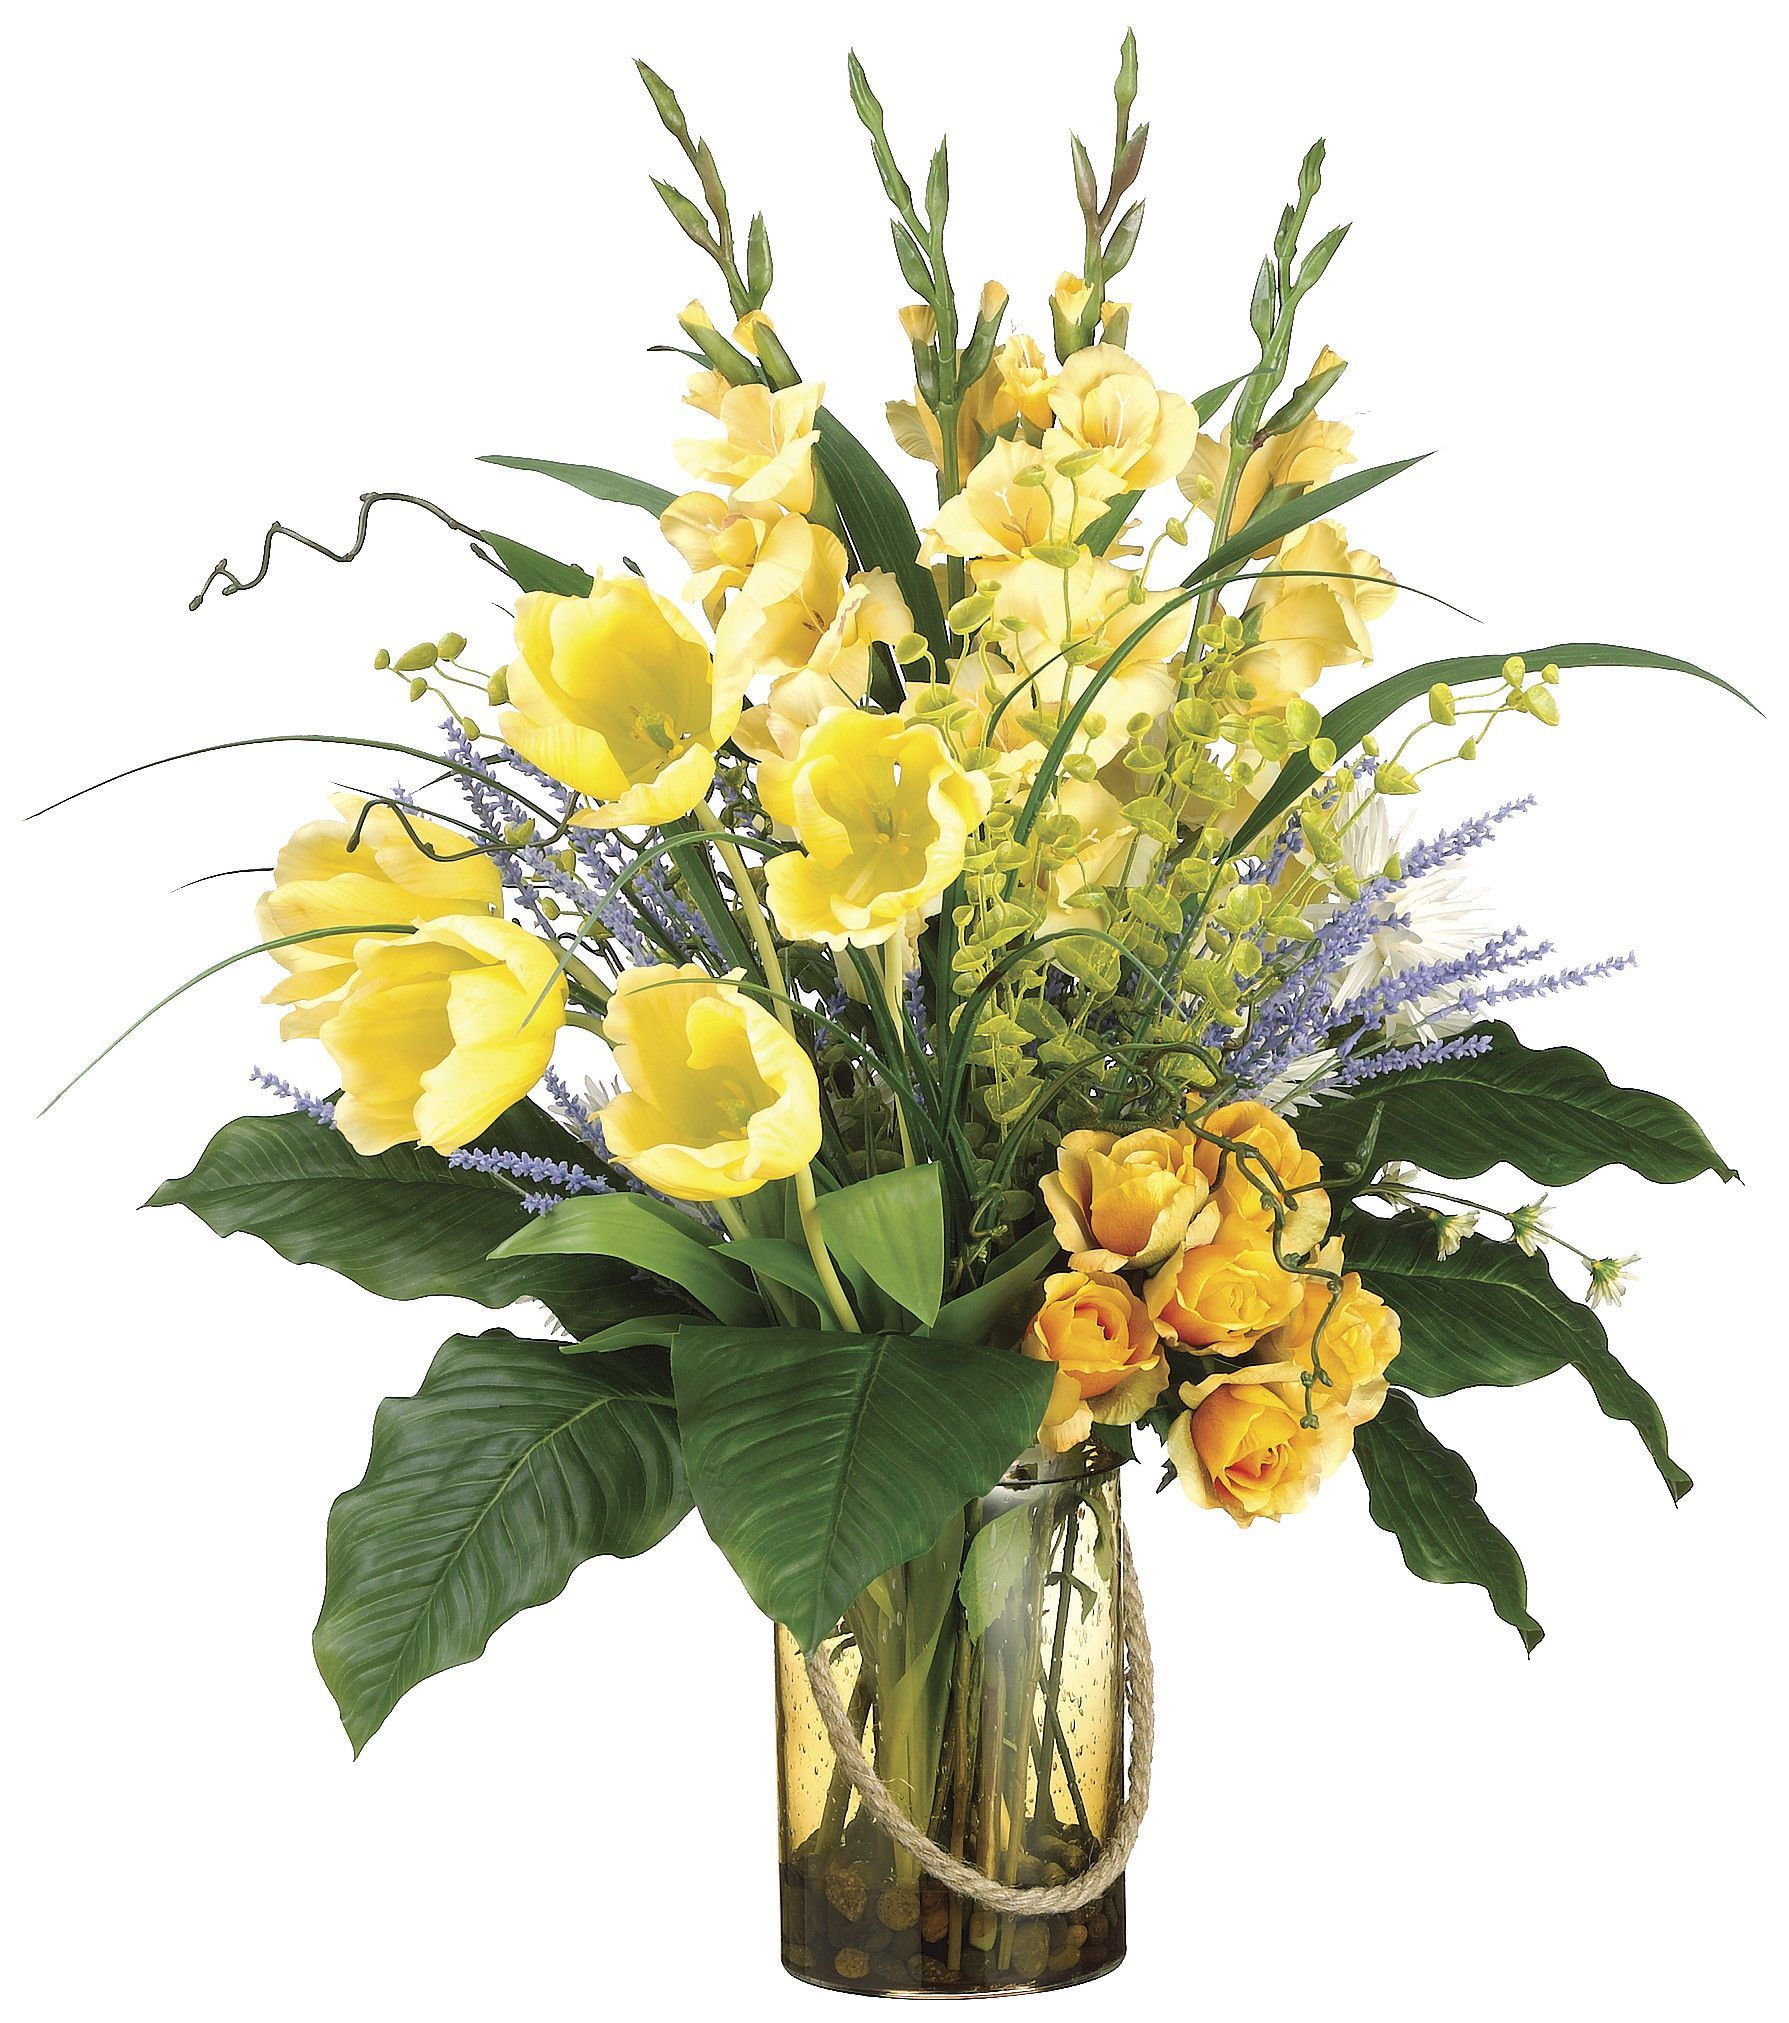 Gladiolus Tulip Rose And Bells Of Ireland Arrangement In Glass Vase Yellow A Flower Arrangements Beautiful Flower Arrangements Christmas Floral Arrangements